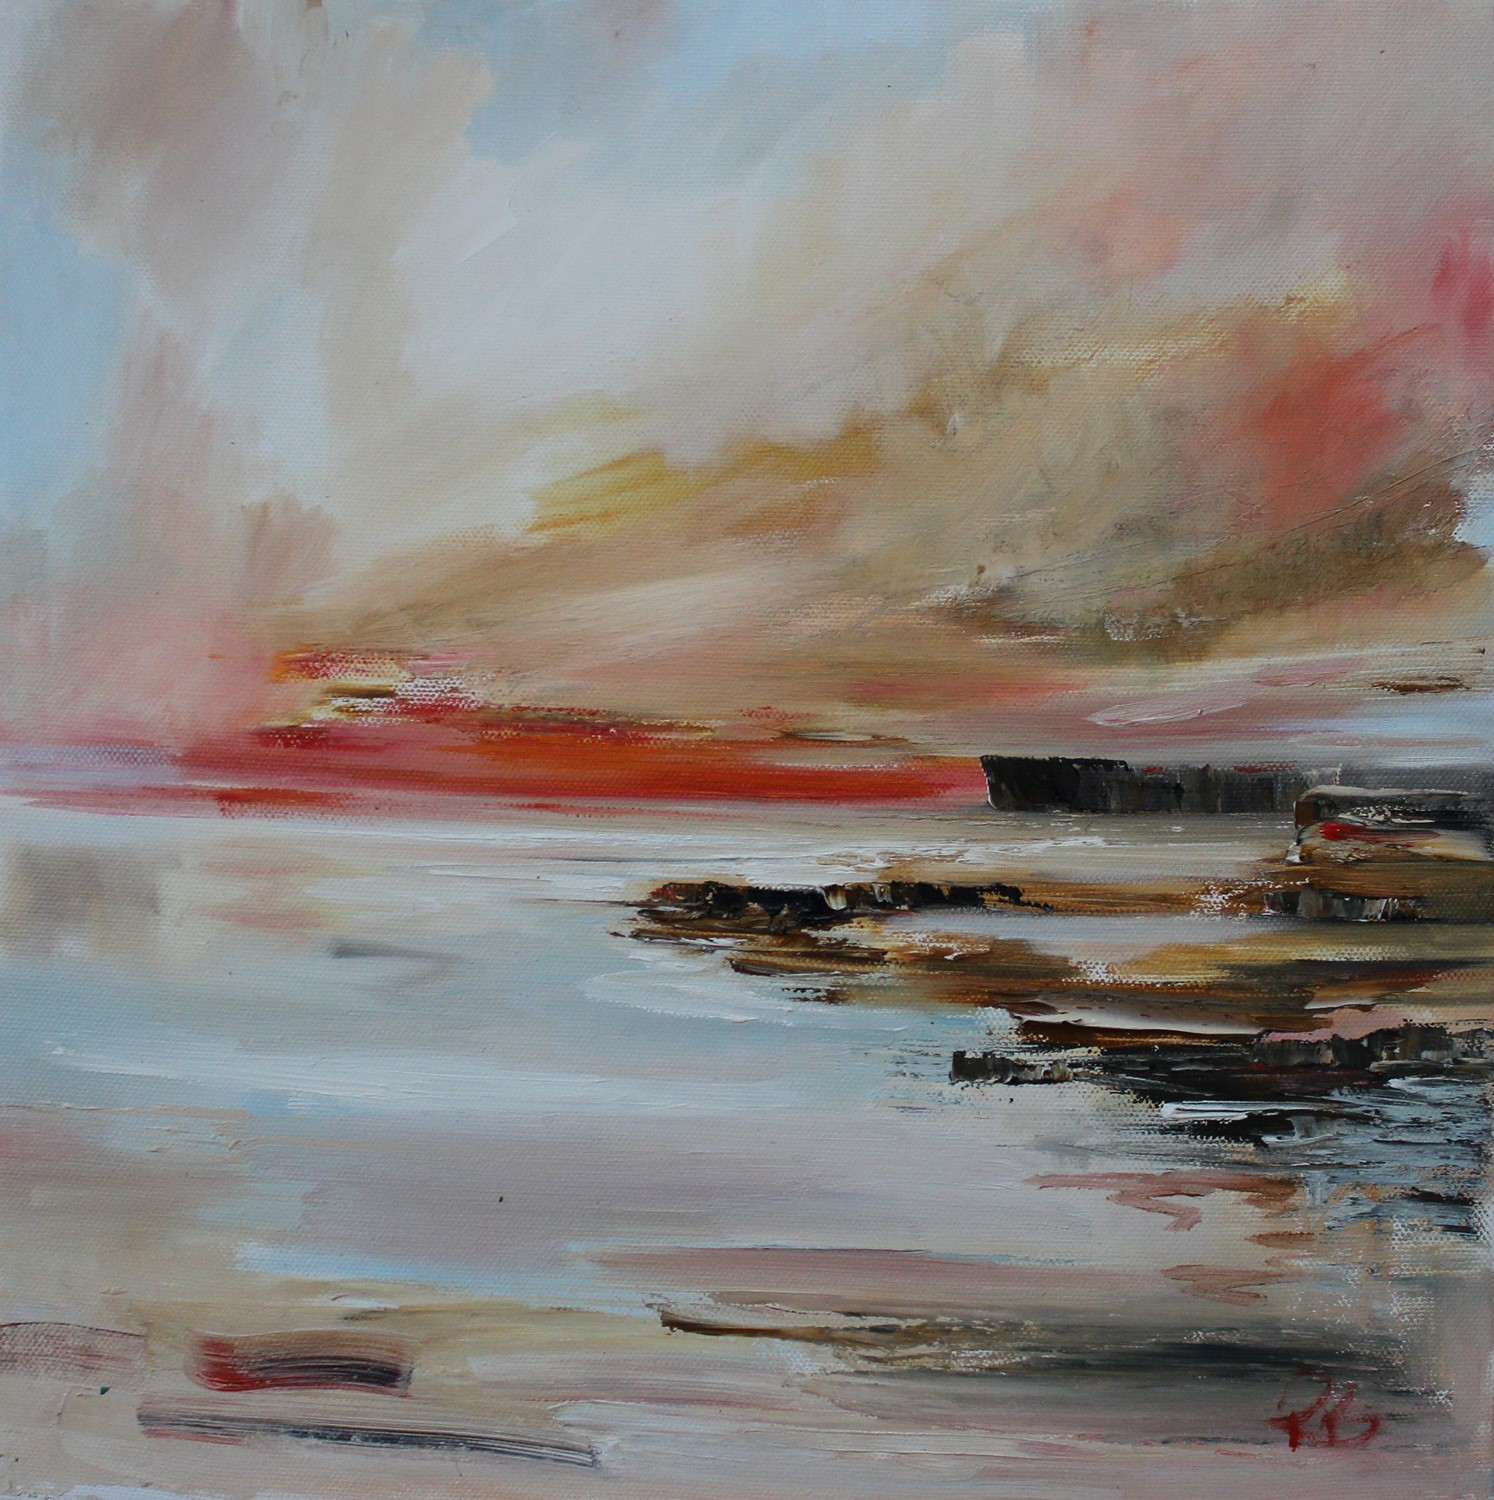 'When The Sunsets' by artist Rosanne Barr